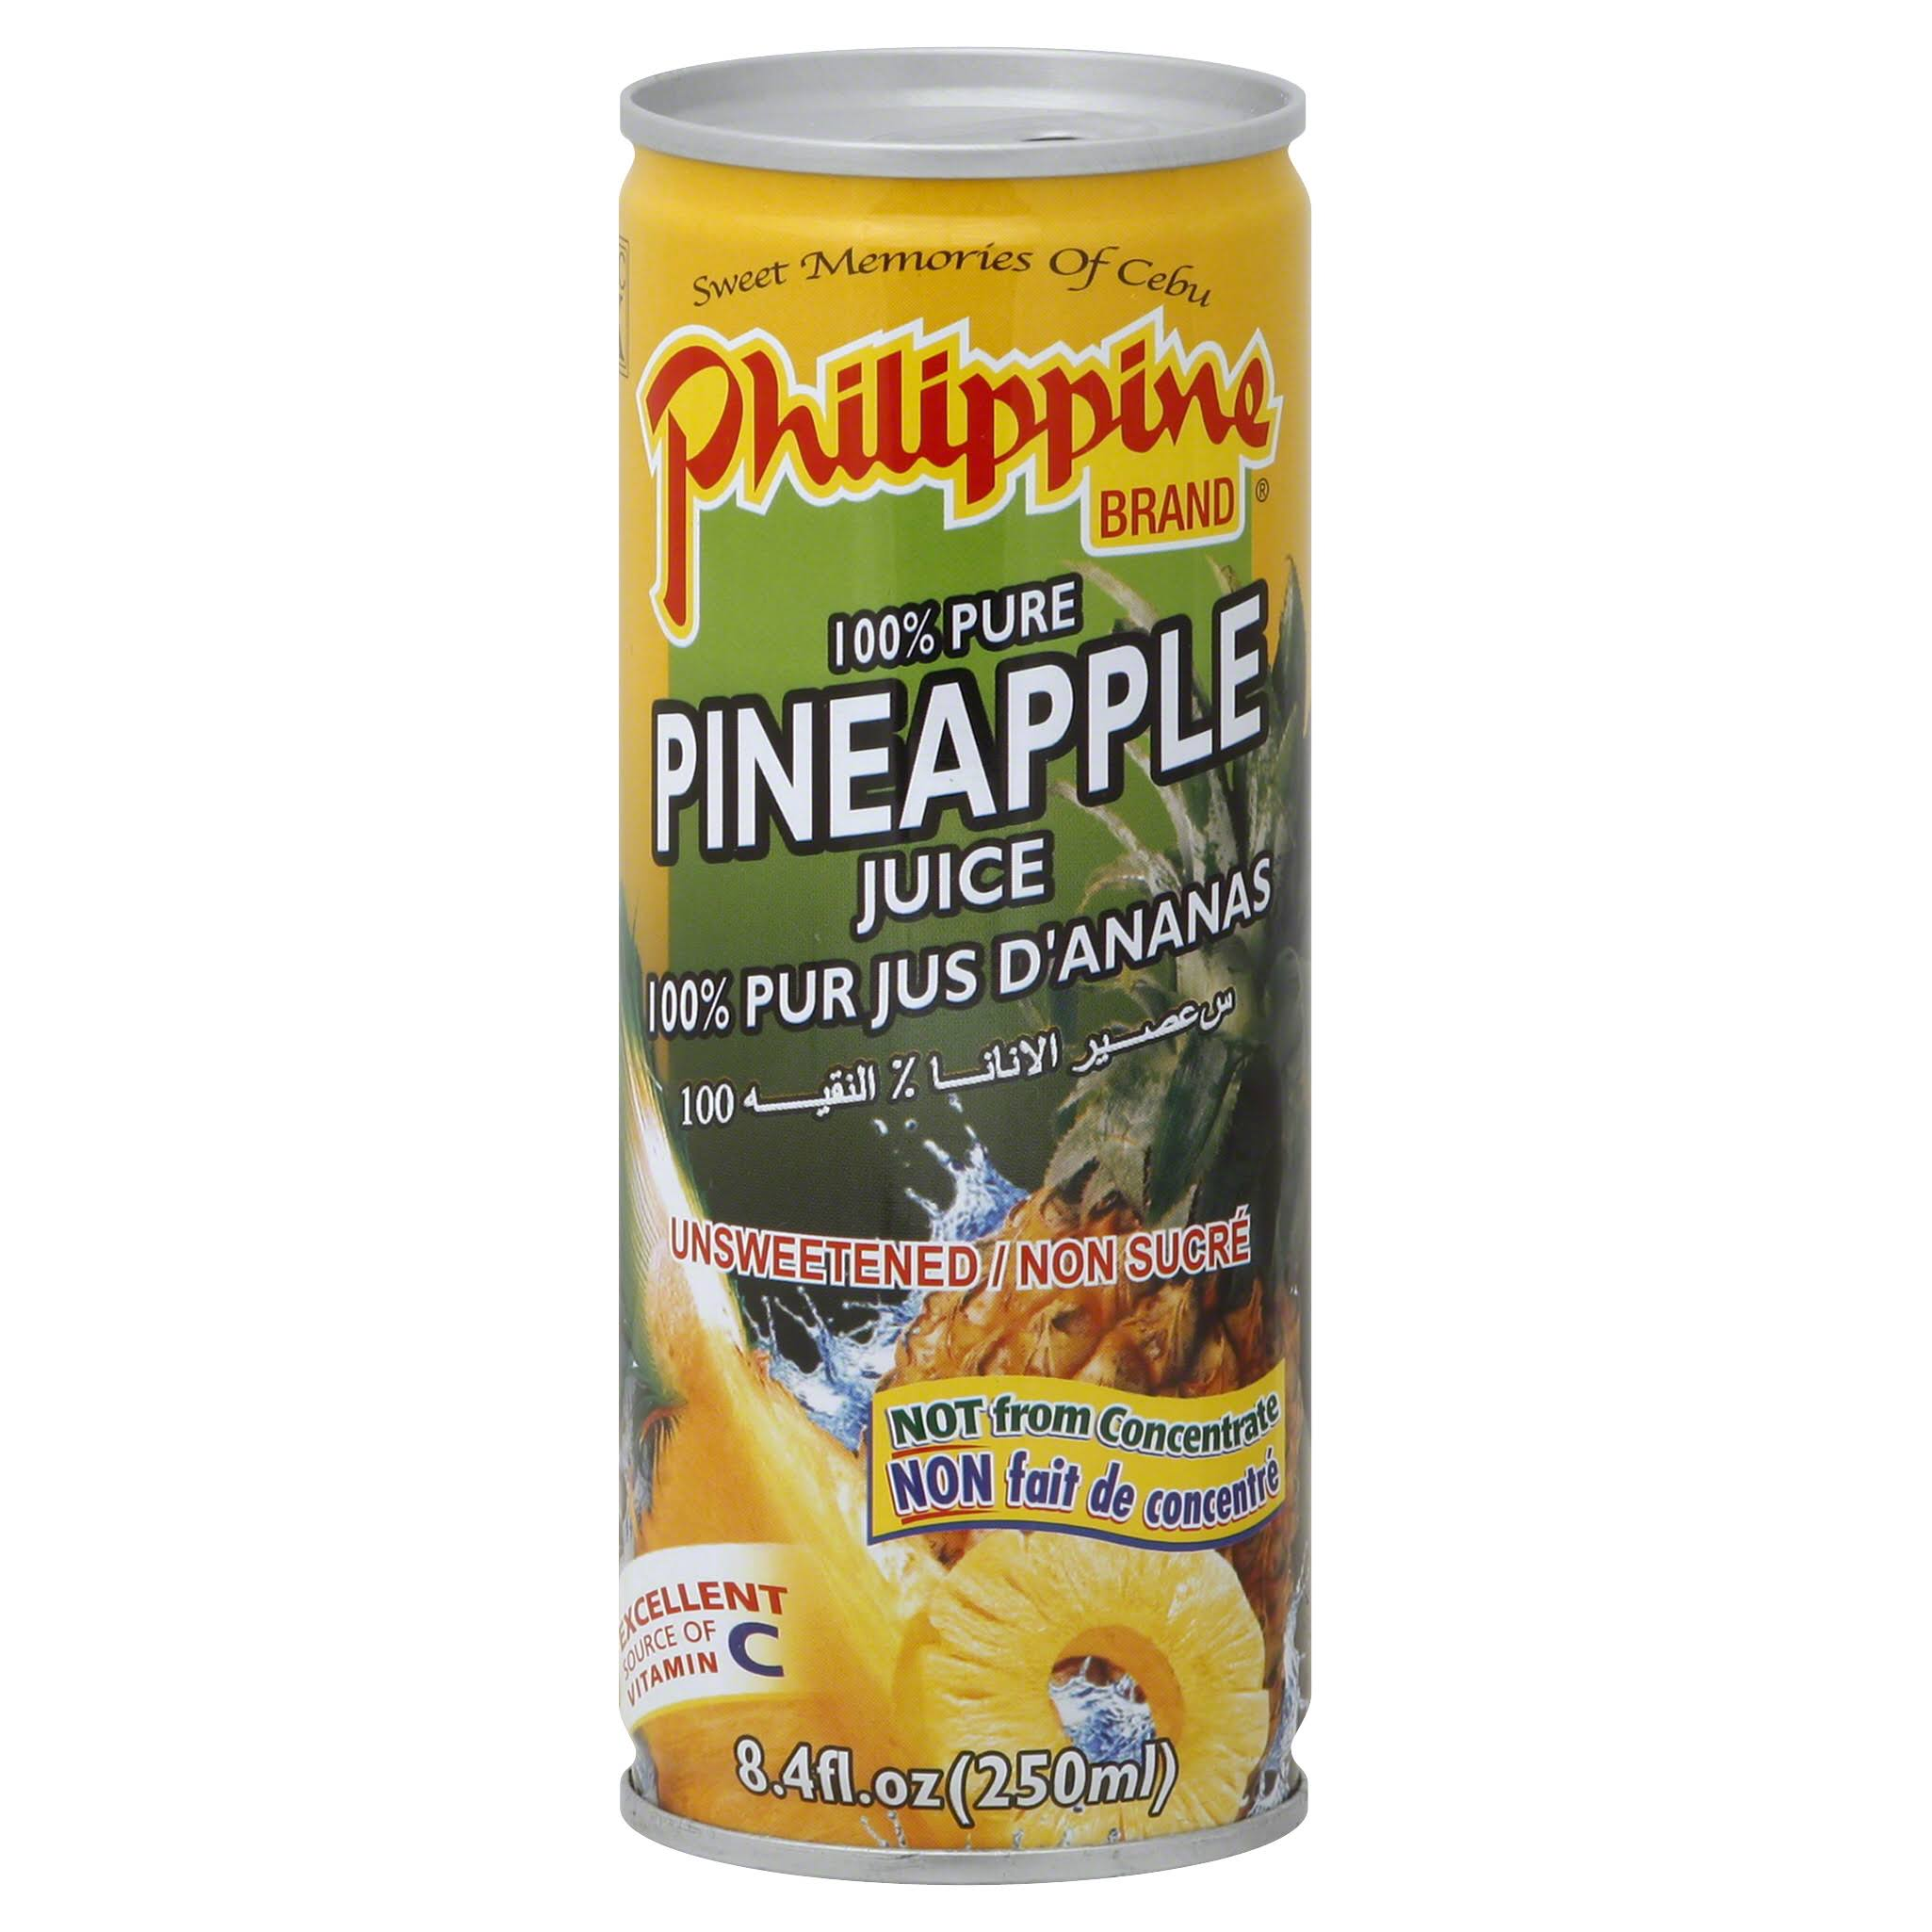 Philippine 100% Juice, Pineapple, Unsweetened - 8.4 fl oz